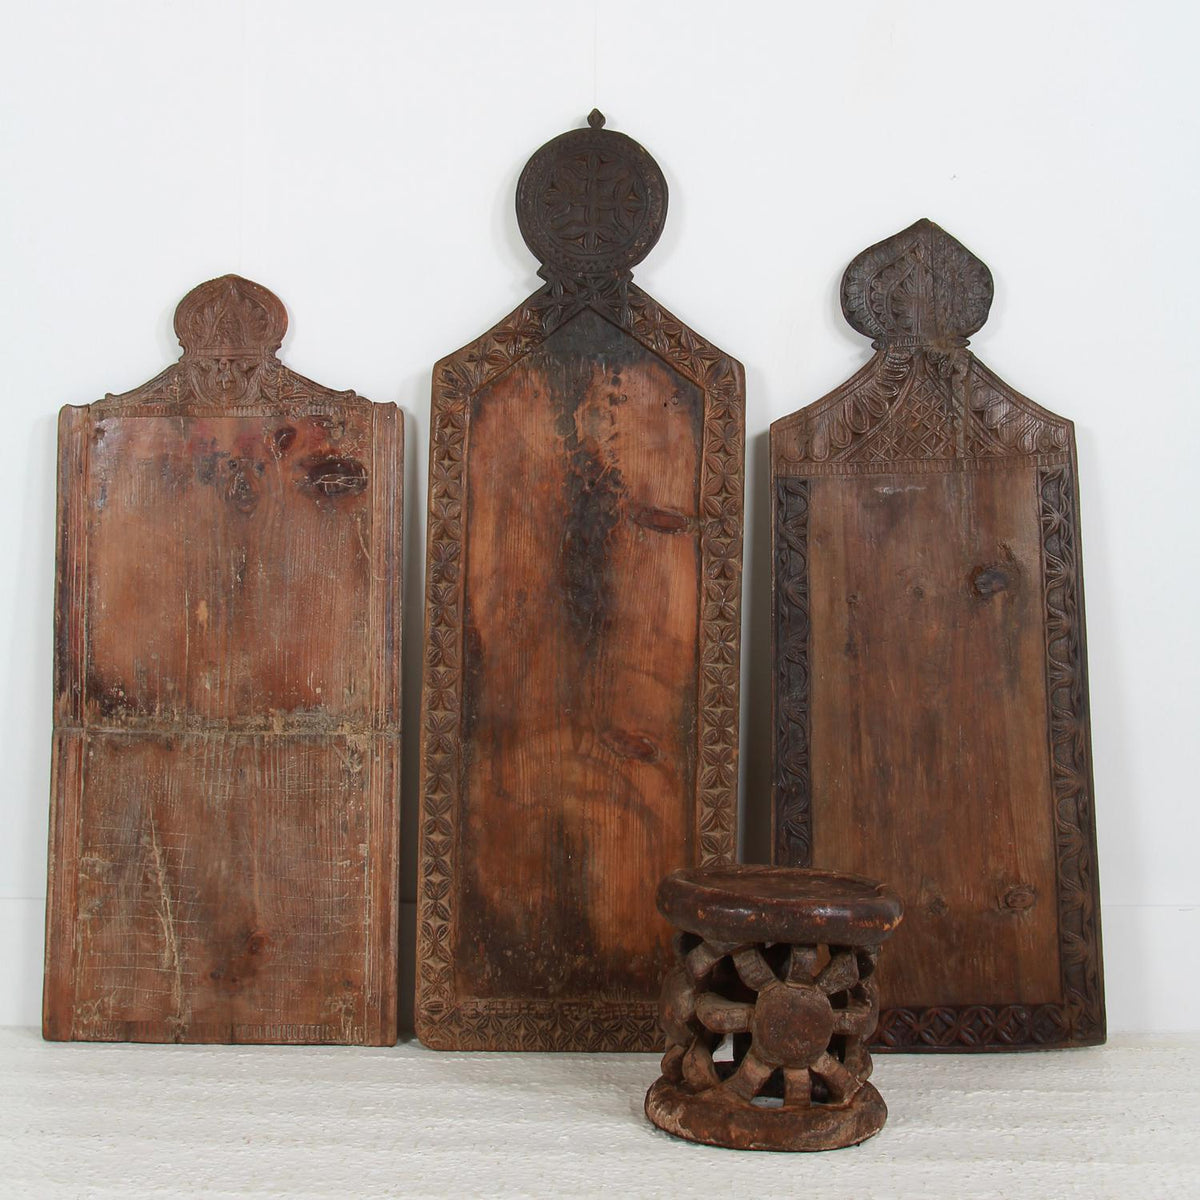 Rare Carved Decorative Wooden Prayer Wall Fragments